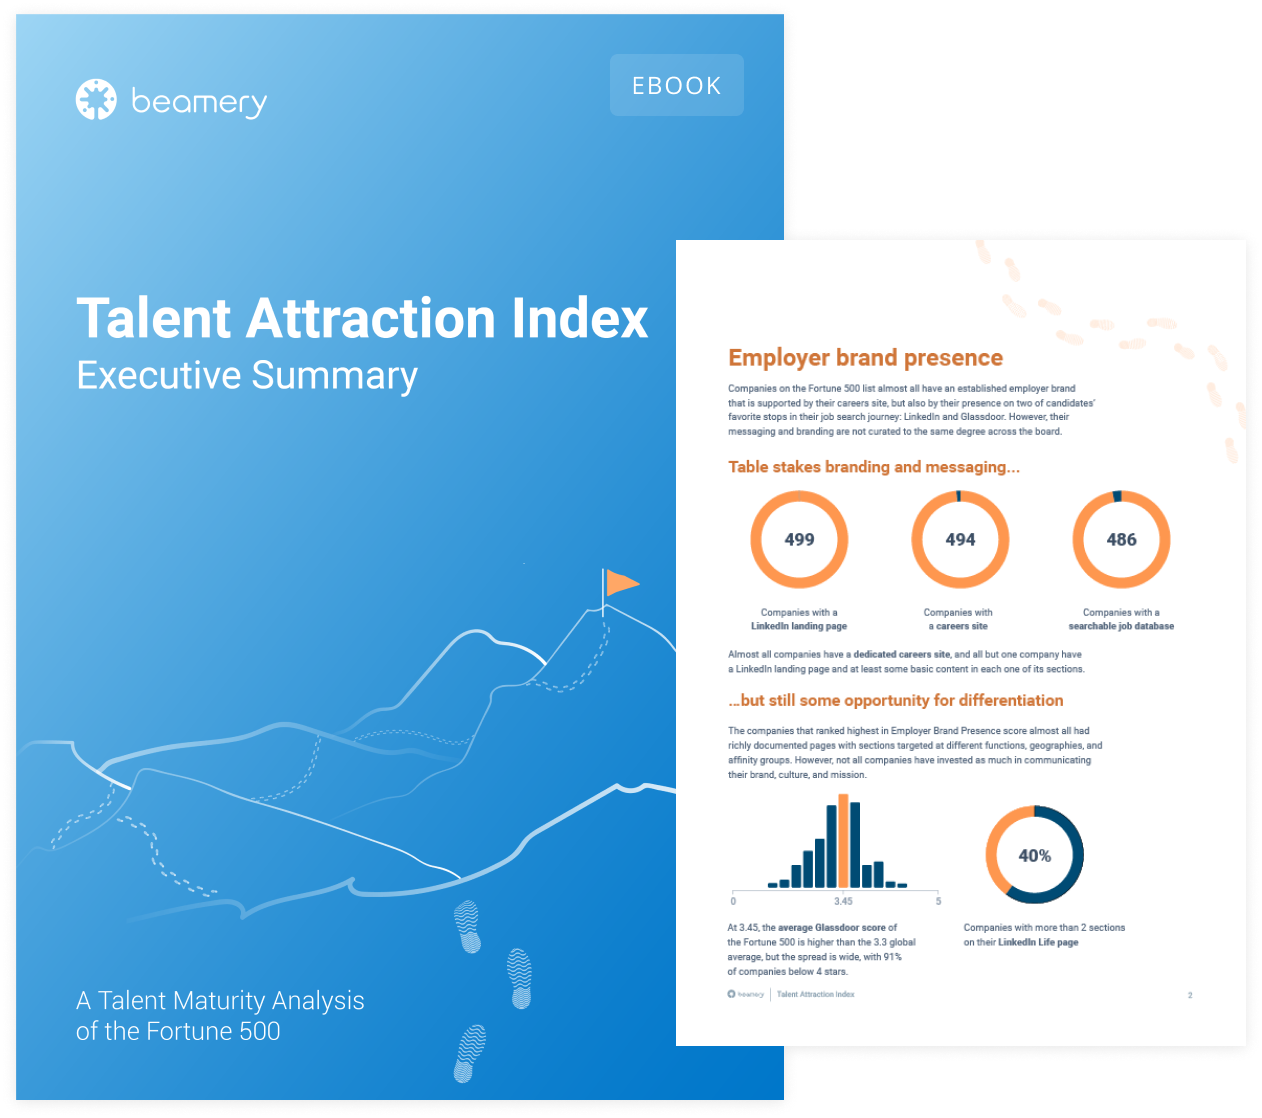 Talent Attraction Index Executive Summary image